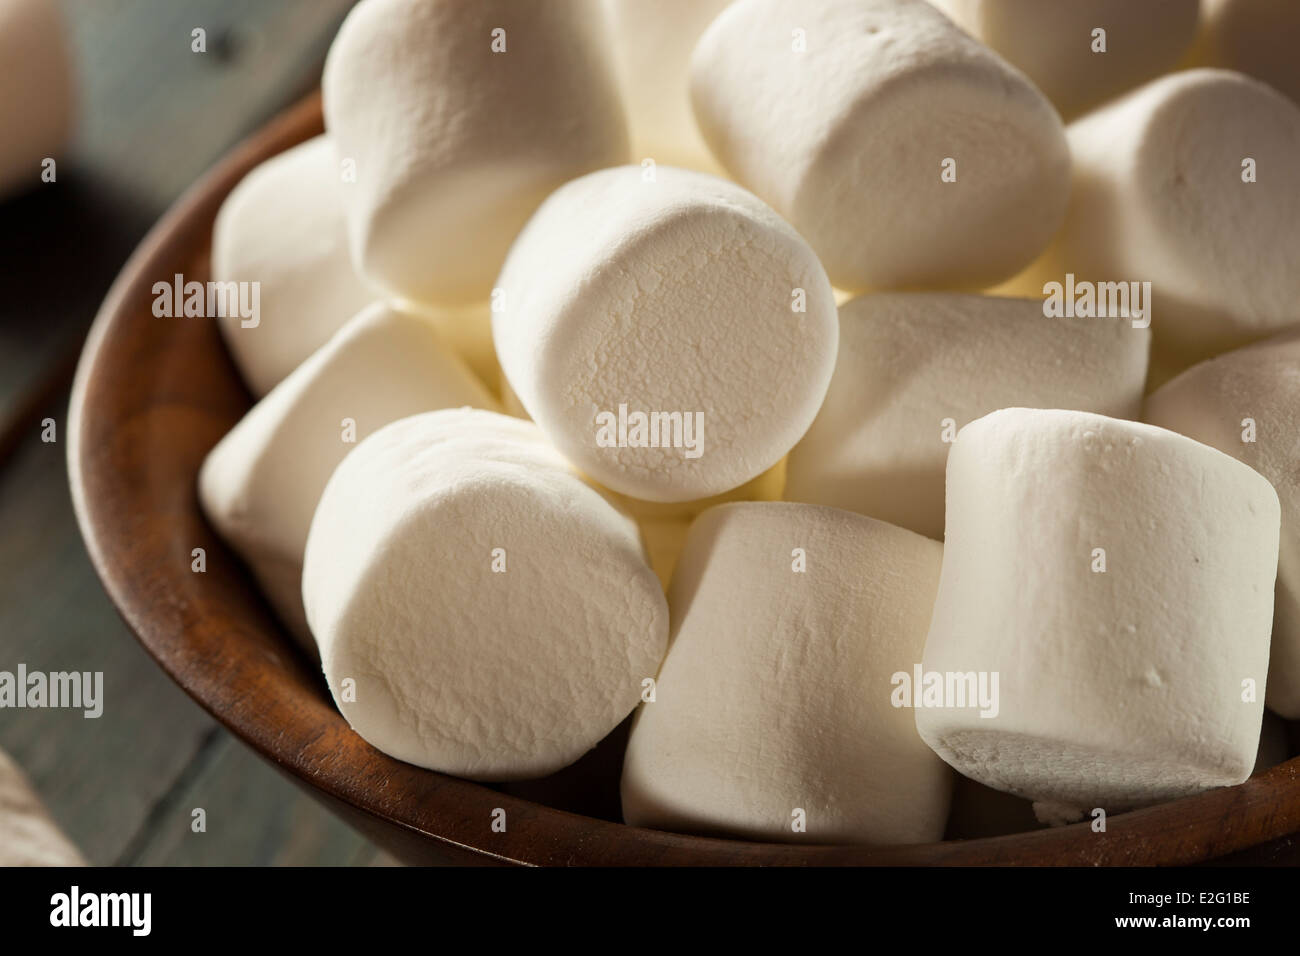 Unhealthy Large White Marshmallows on a Background - Stock Image